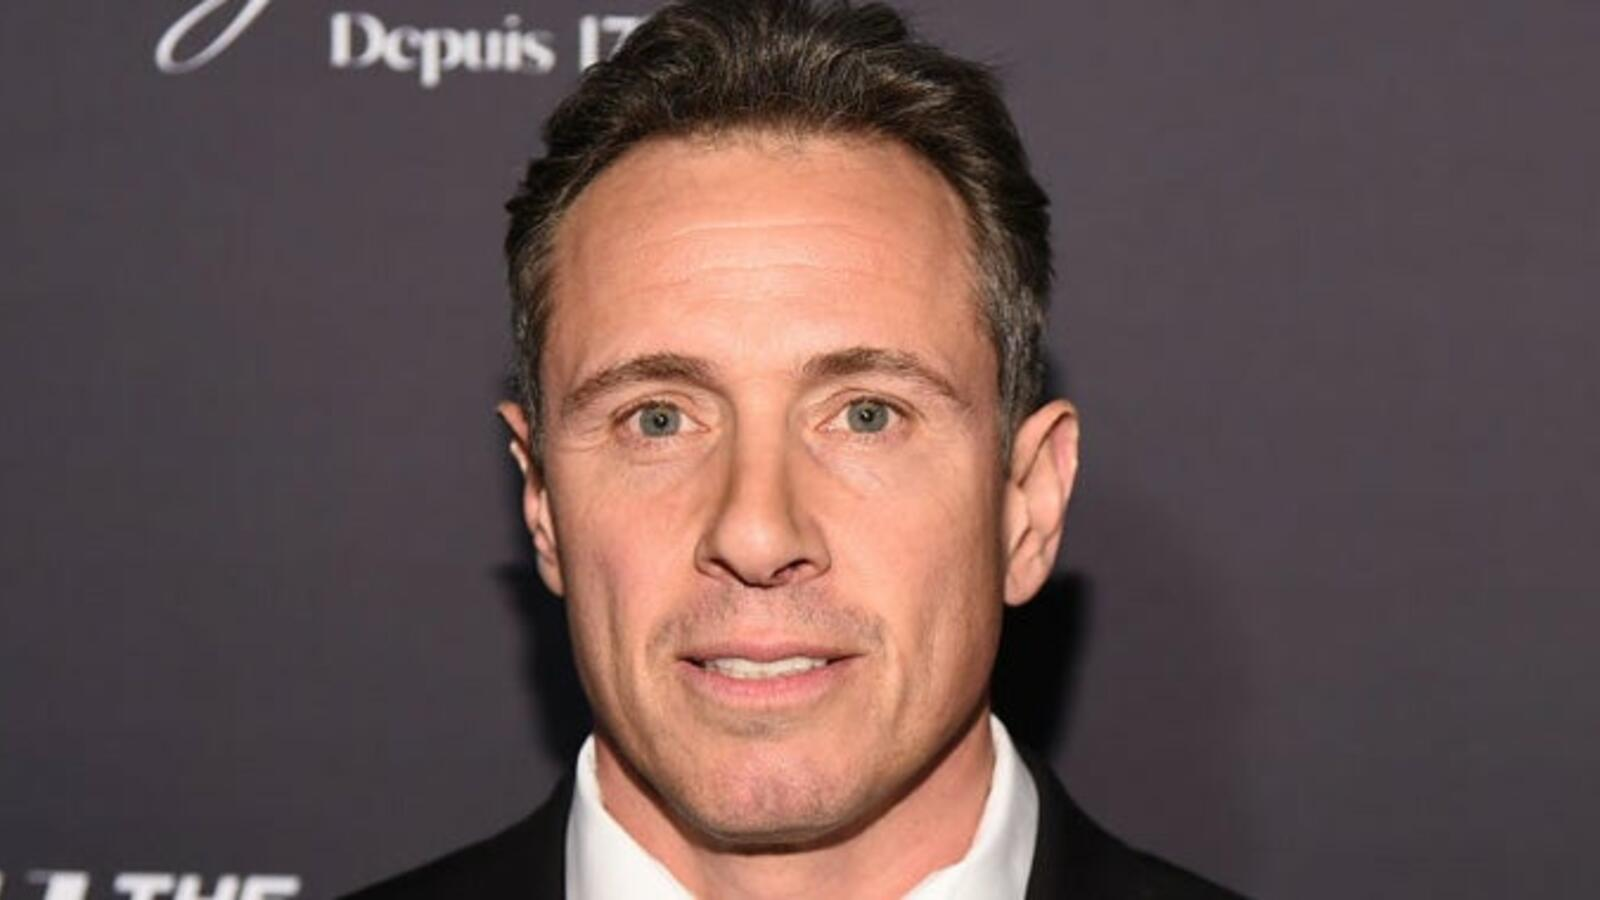 Chris Cuomo Admits Sexually Harassing His Former Boss